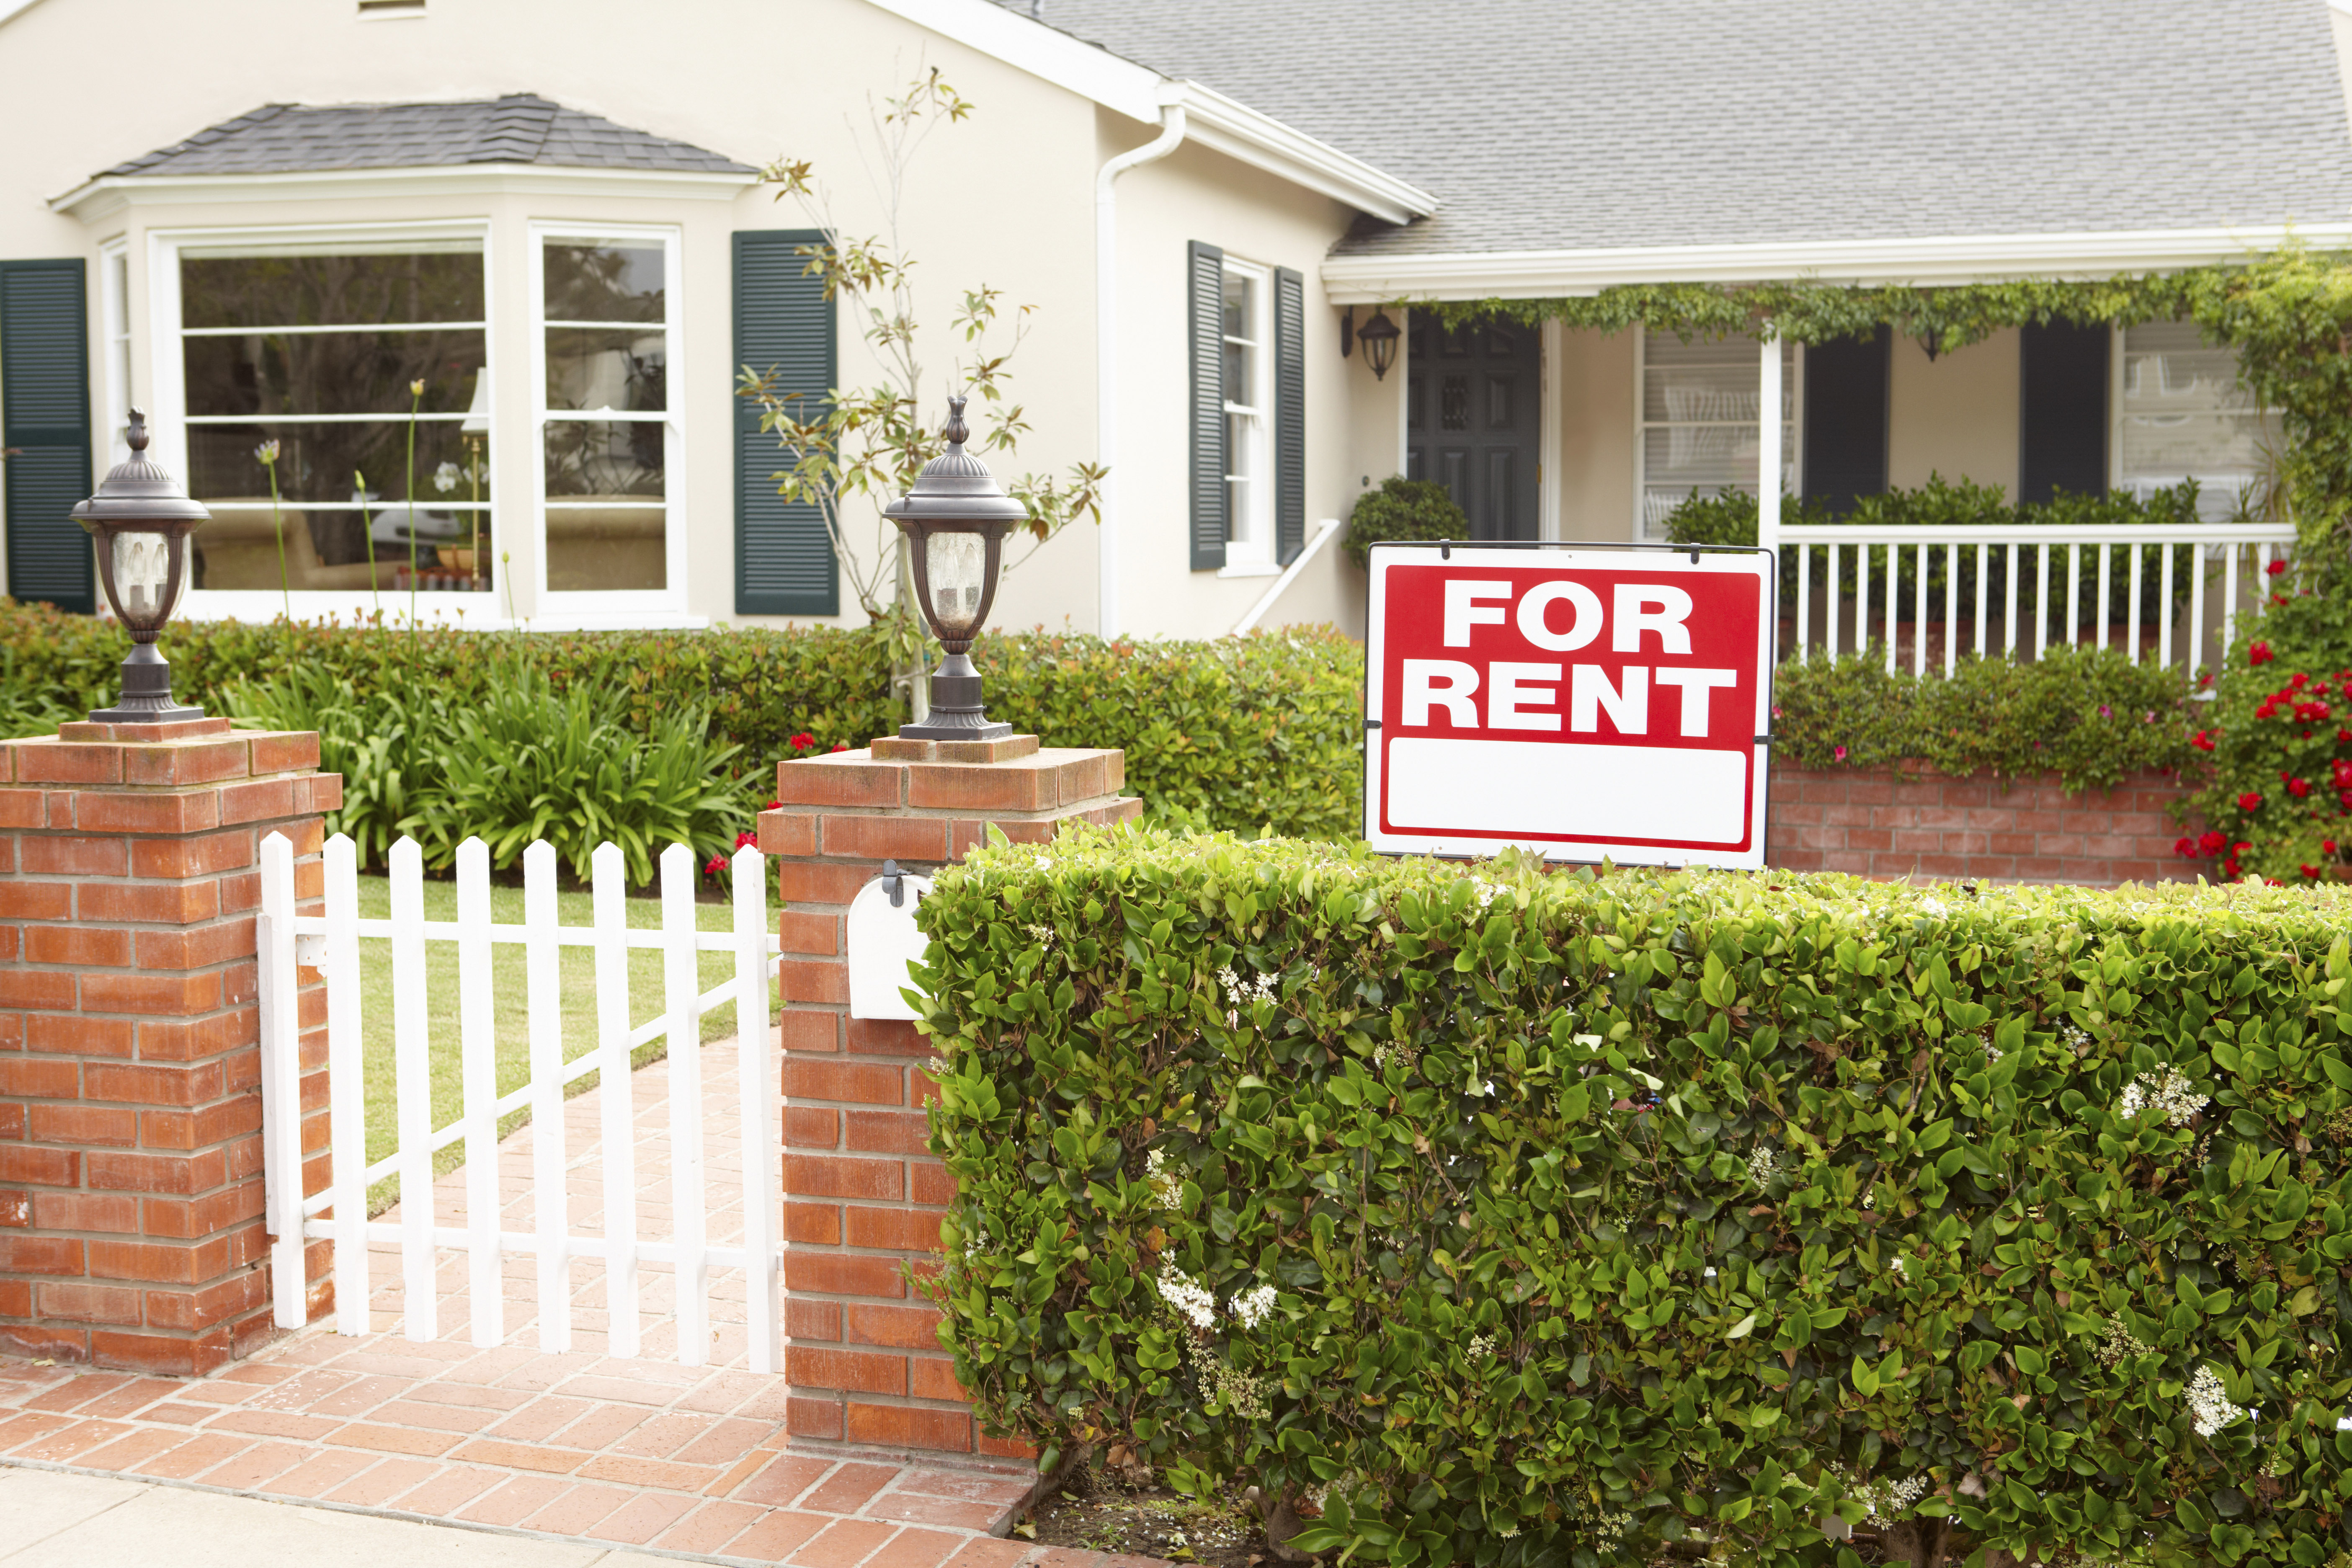 6 Things to Consider Before Investing in a Rental Property   US News Real  Estate. 6 Things to Consider Before Investing in a Rental Property   US